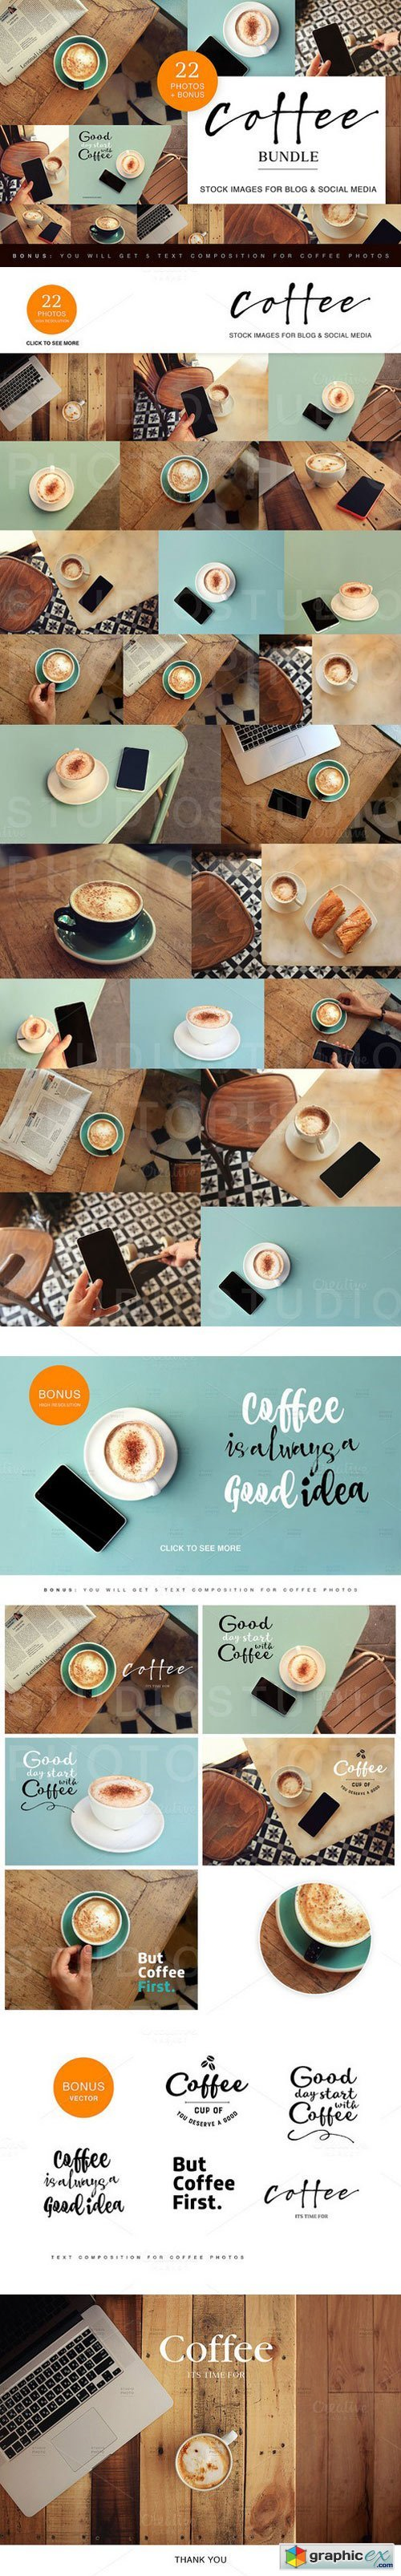 Coffee bundle/ Images for Blogs